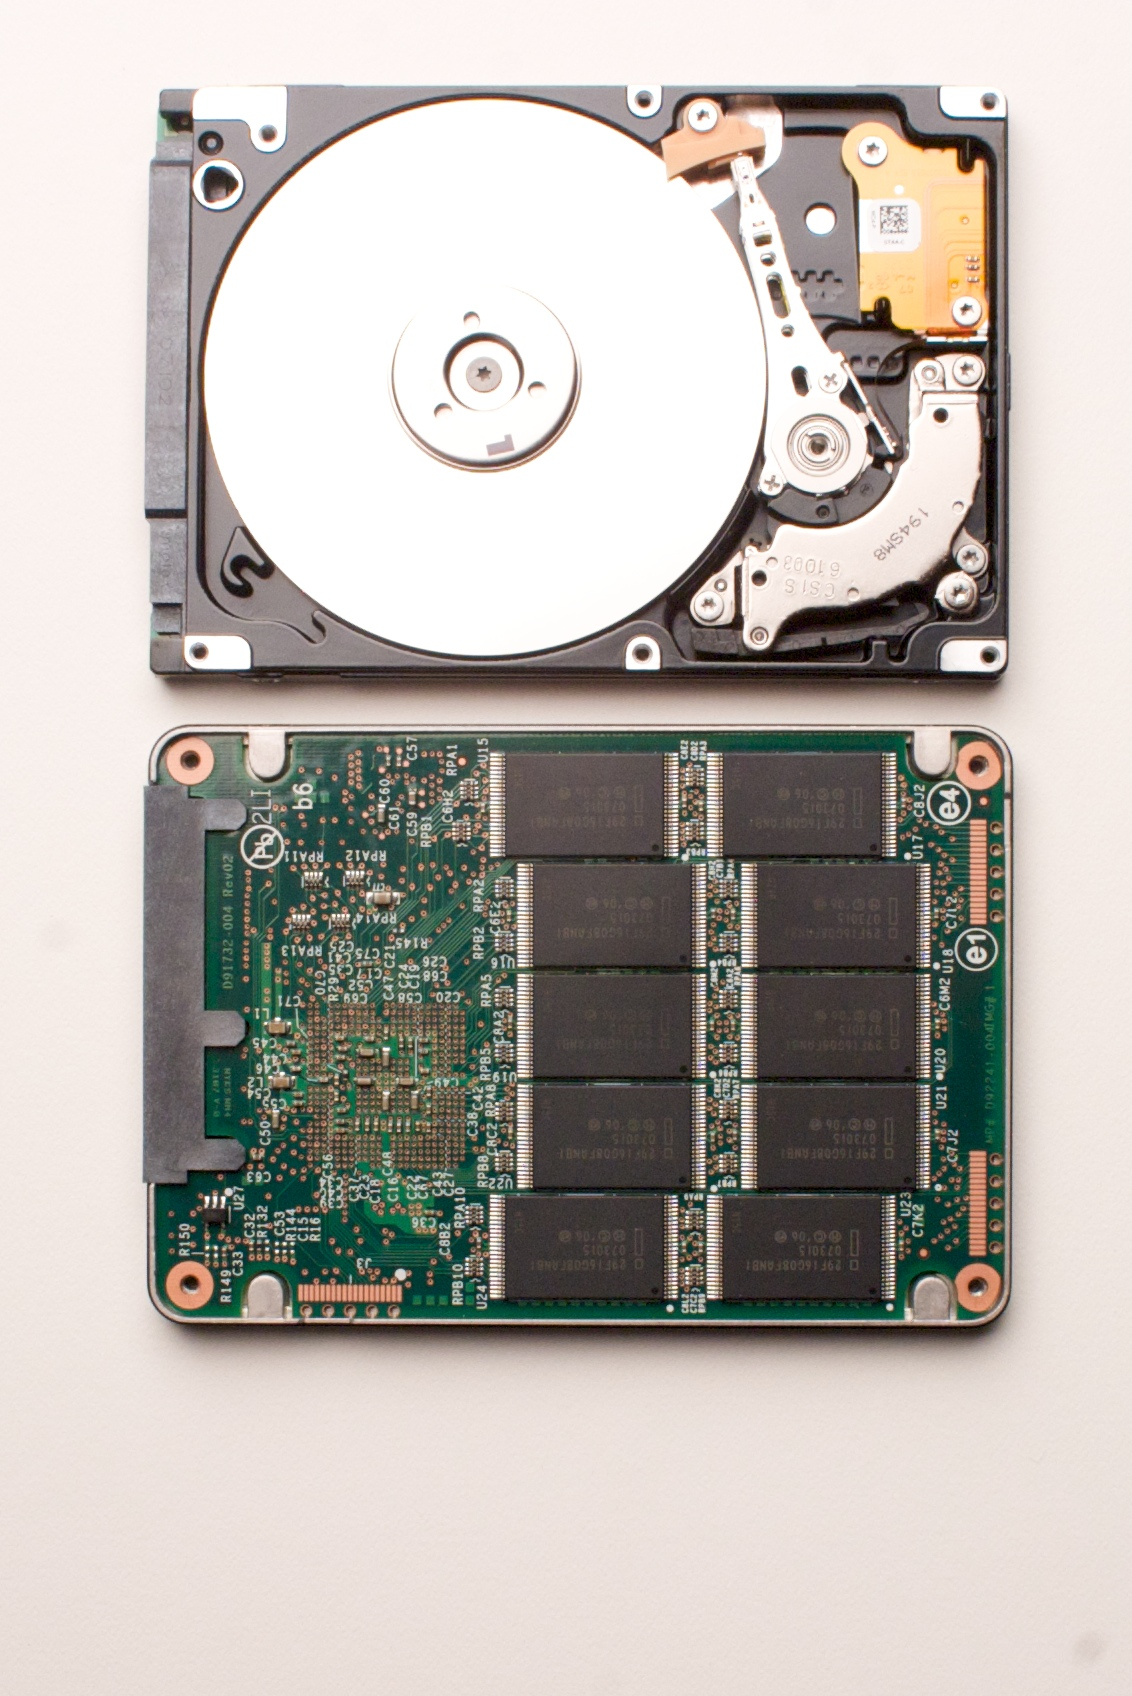 A conventional hard drive and a solid state (Photo by IntelP